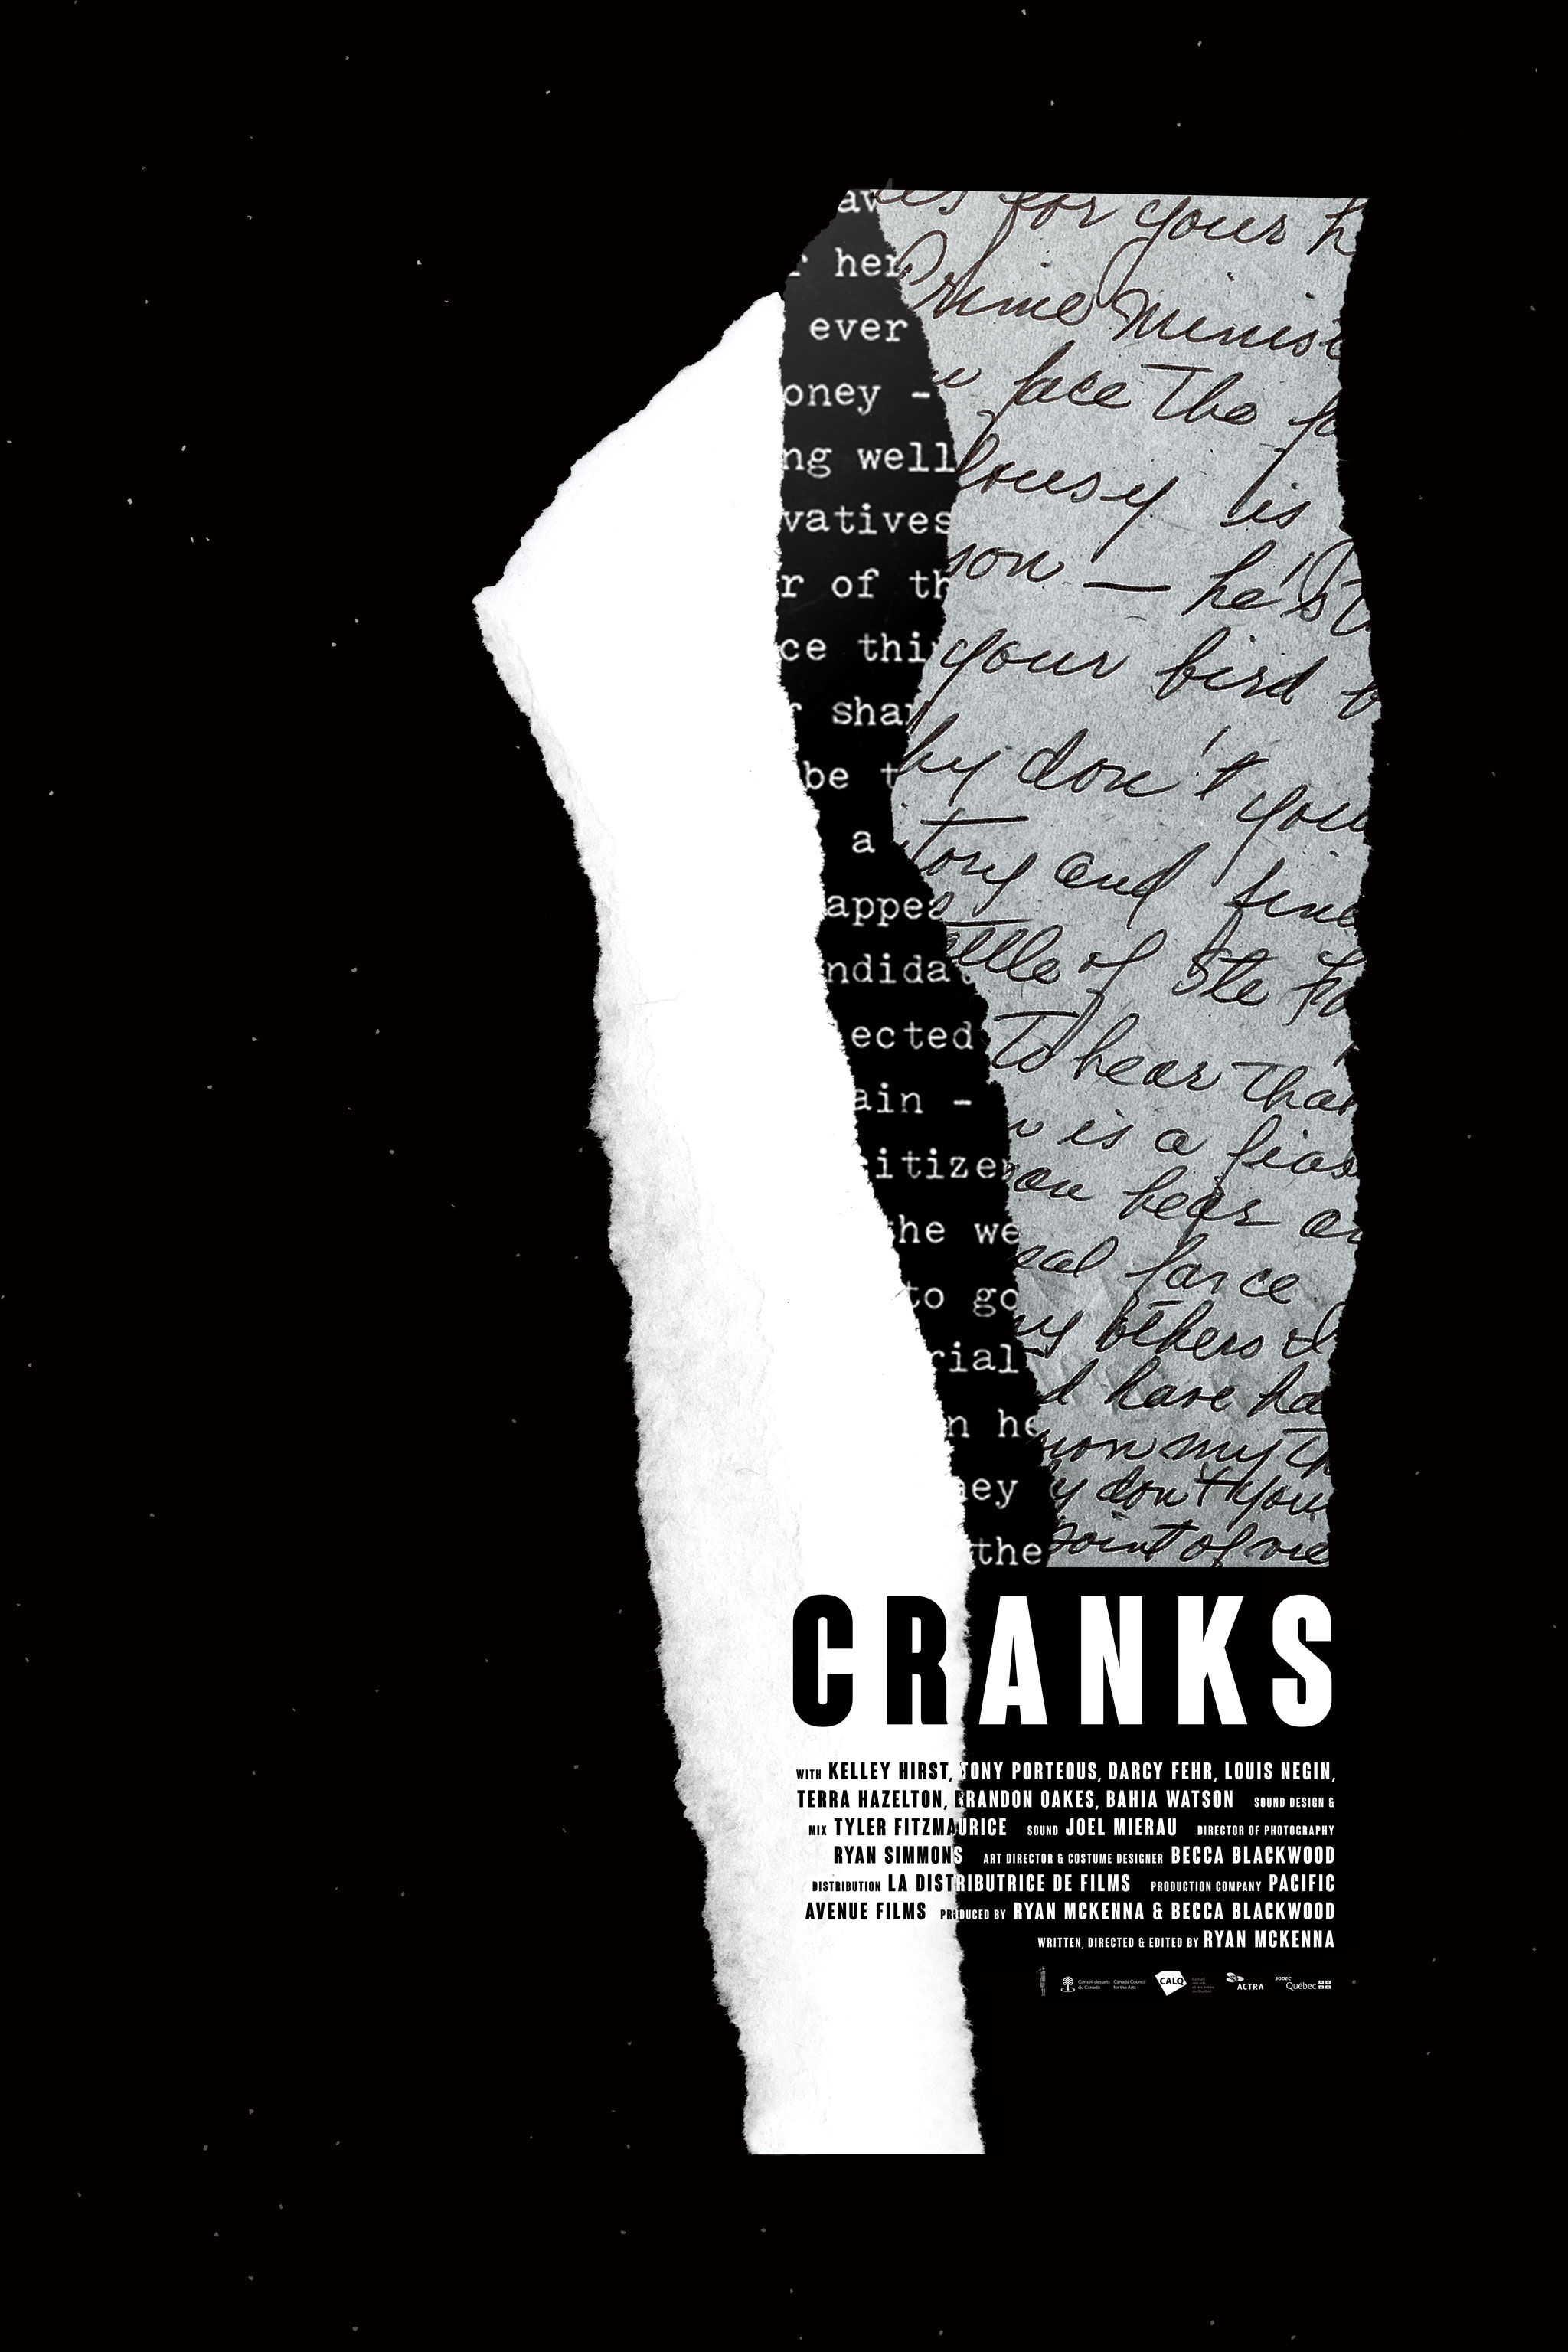 Cranks Official Poster #1 - black